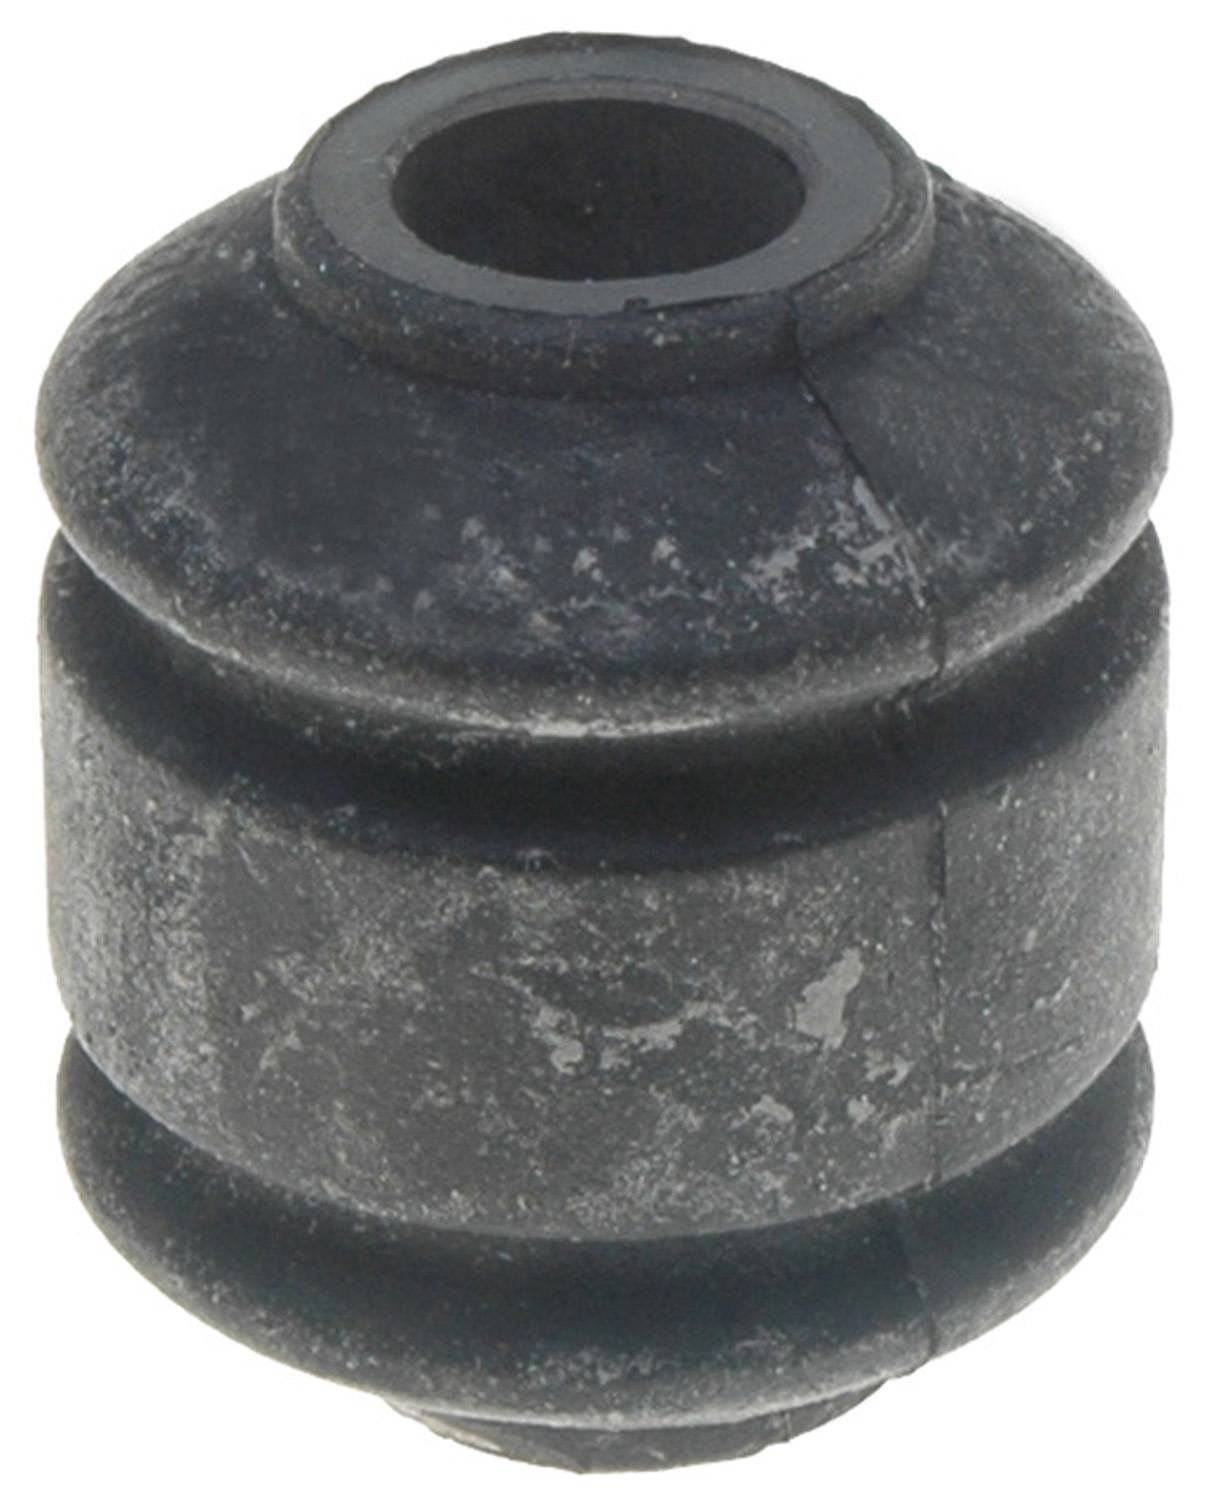 ACDELCO PROFESSIONAL - Suspension Track Bar Bushing - DCC 45G26013